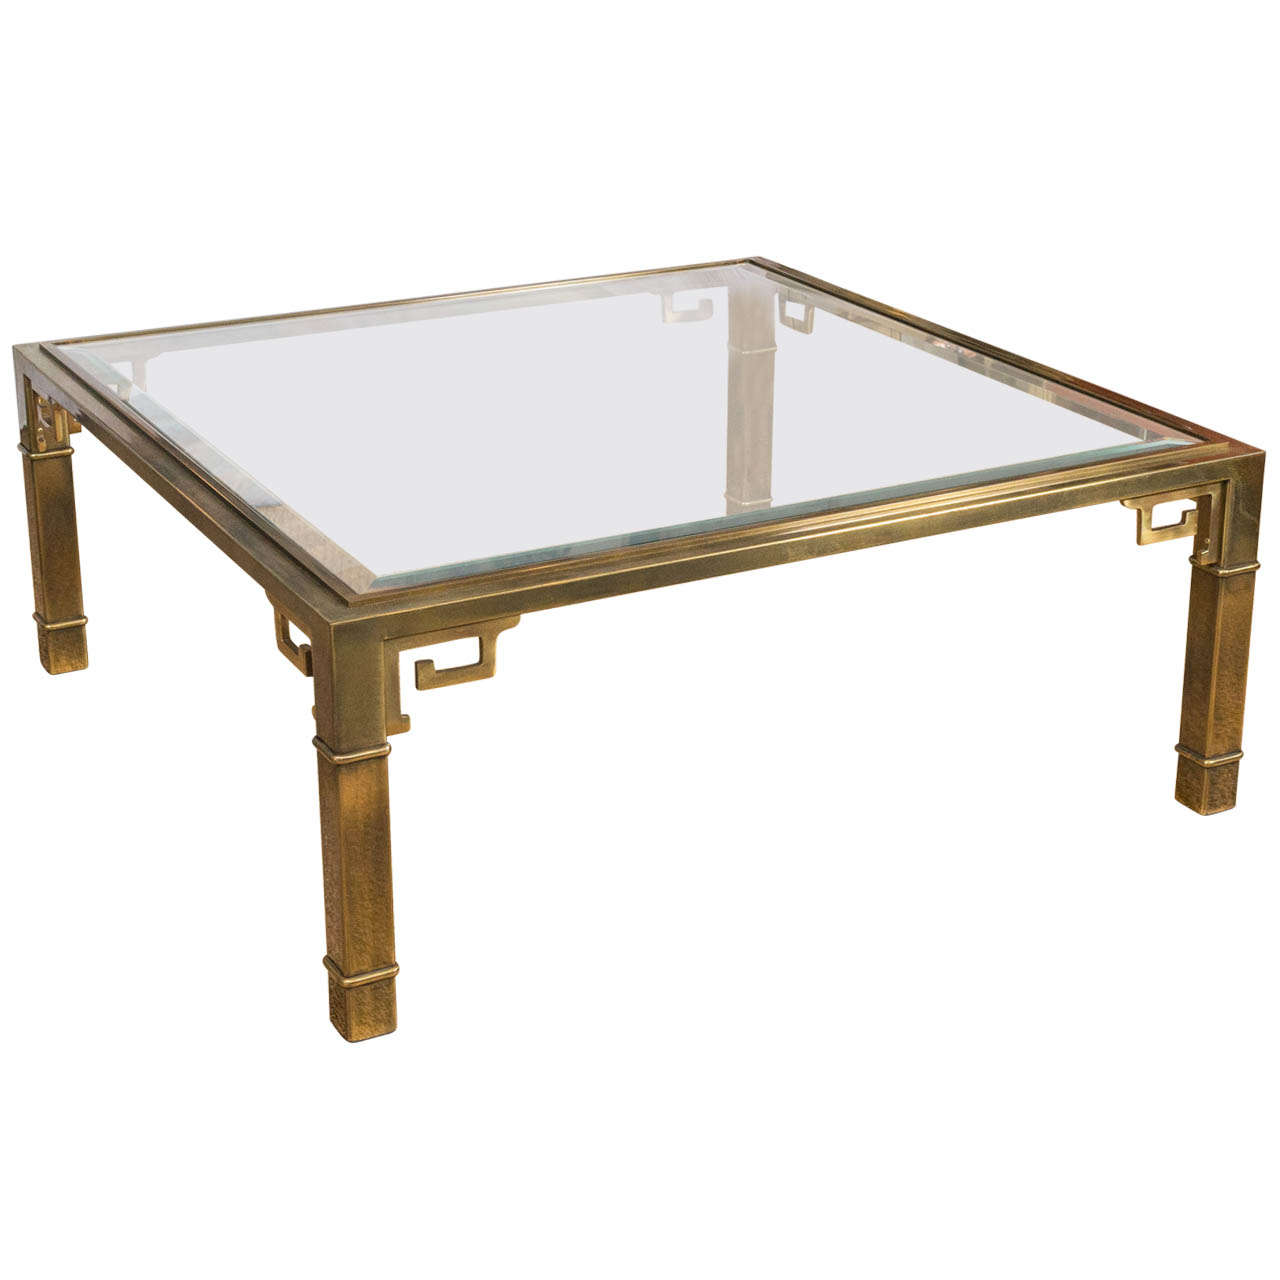 1970 39 S Brass Greek Key Coffee Table By Mastercraft At 1stdibs